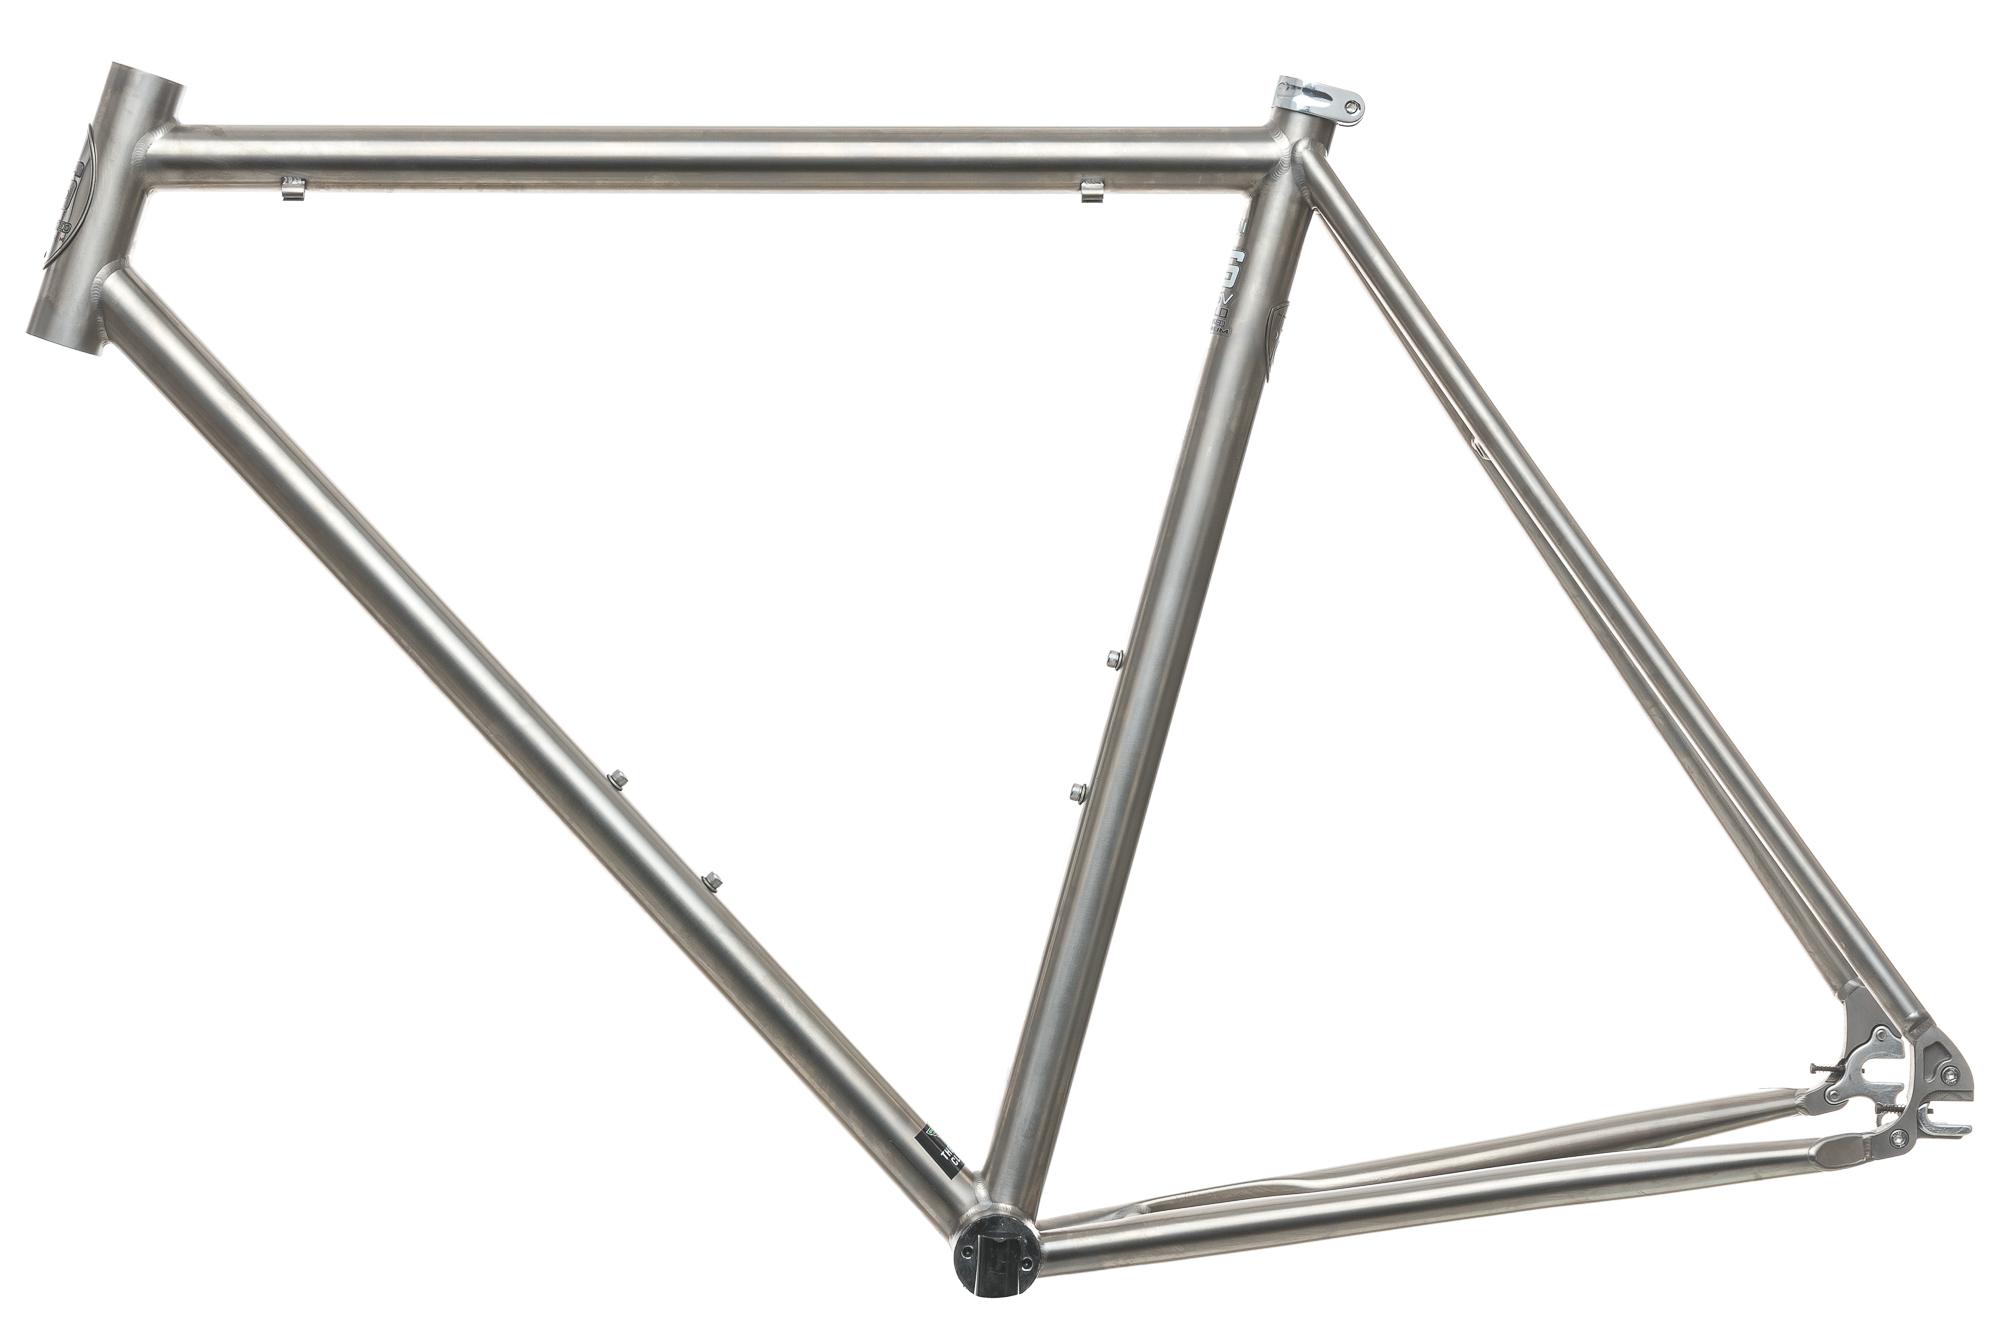 Litespeed Titanium Track Frame 55cm Medium Single Speed | eBay